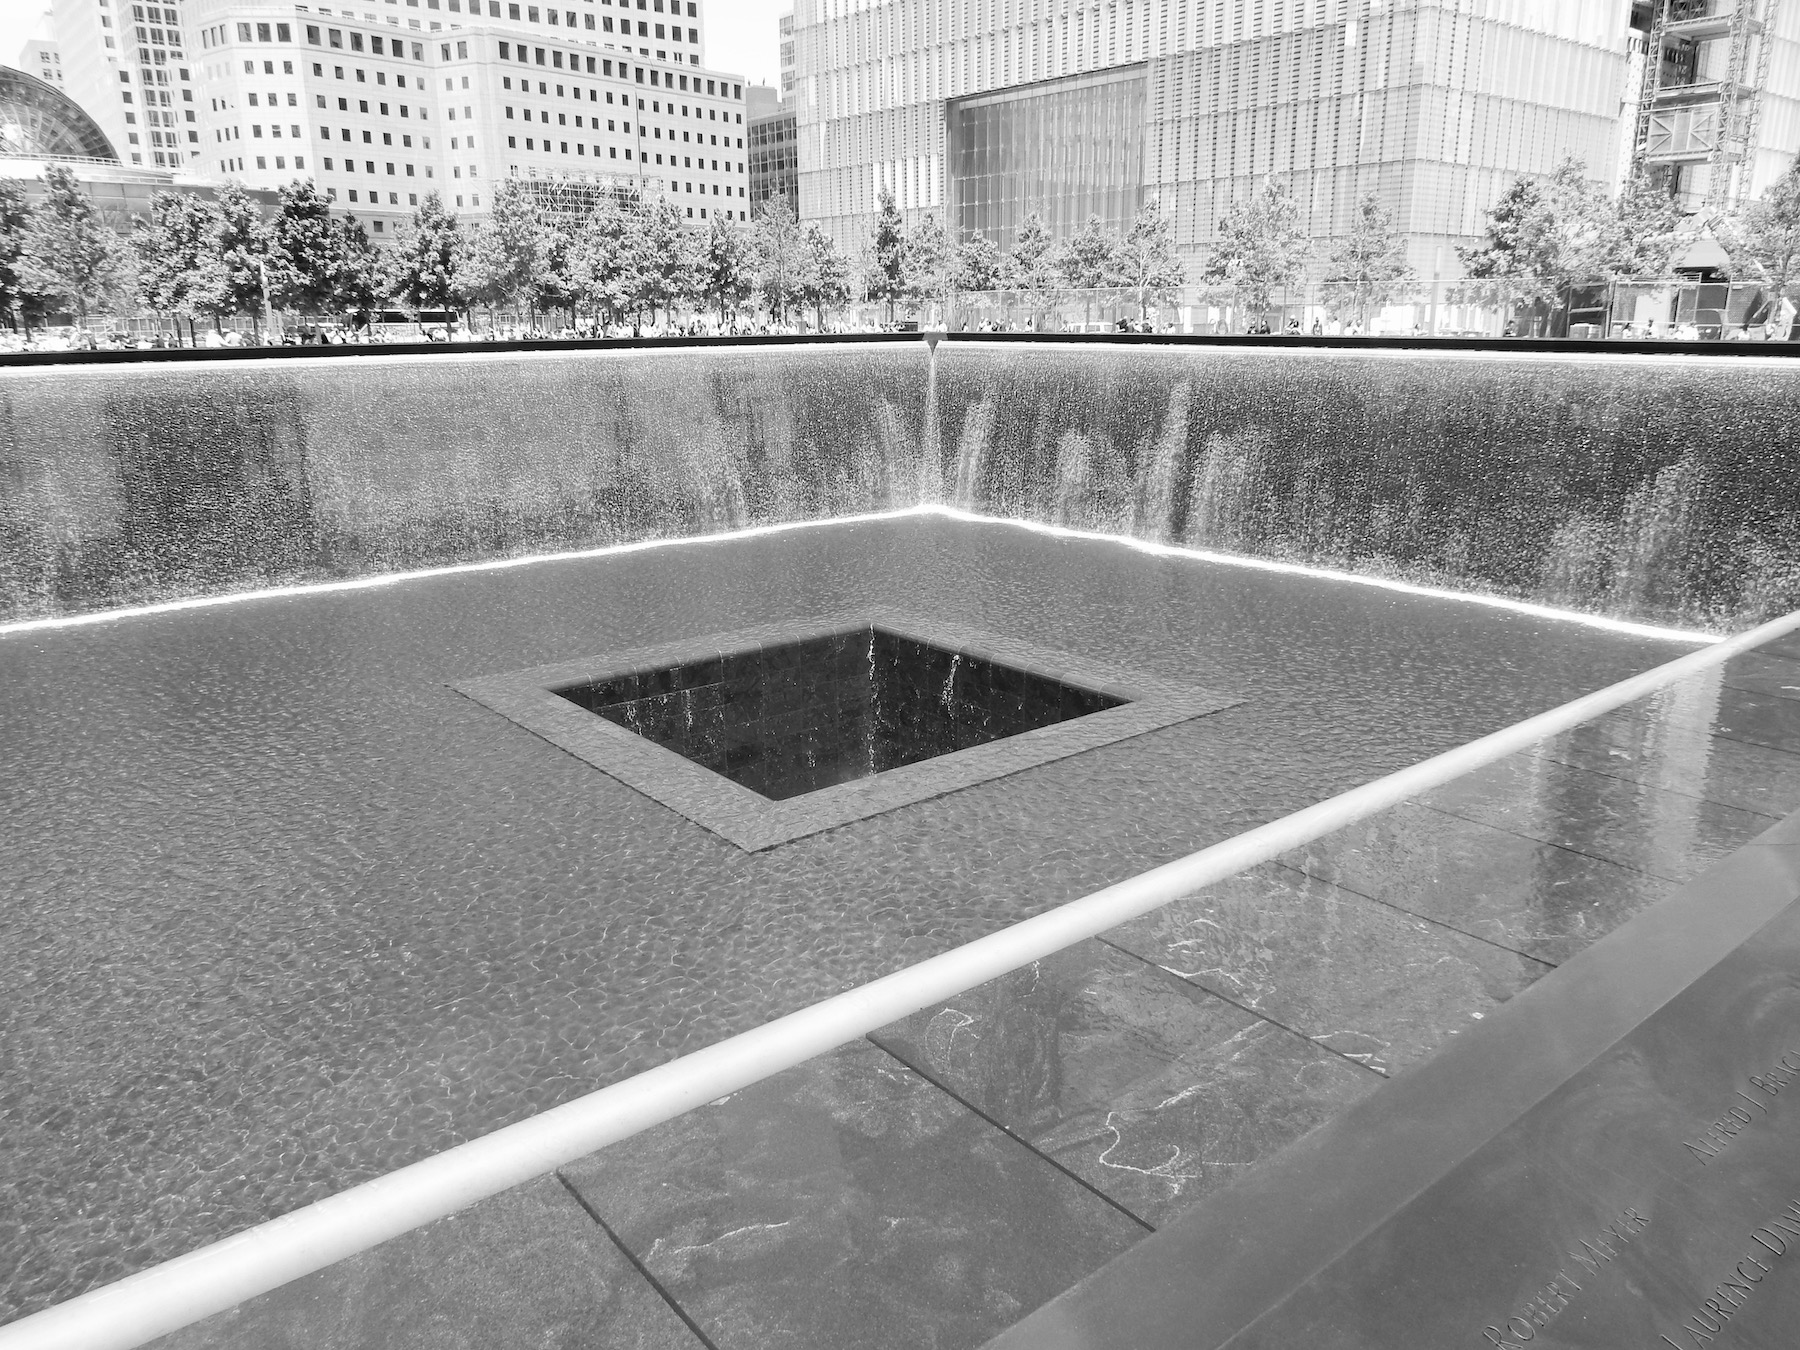 The impact of The 9/11 Memorial & Museum